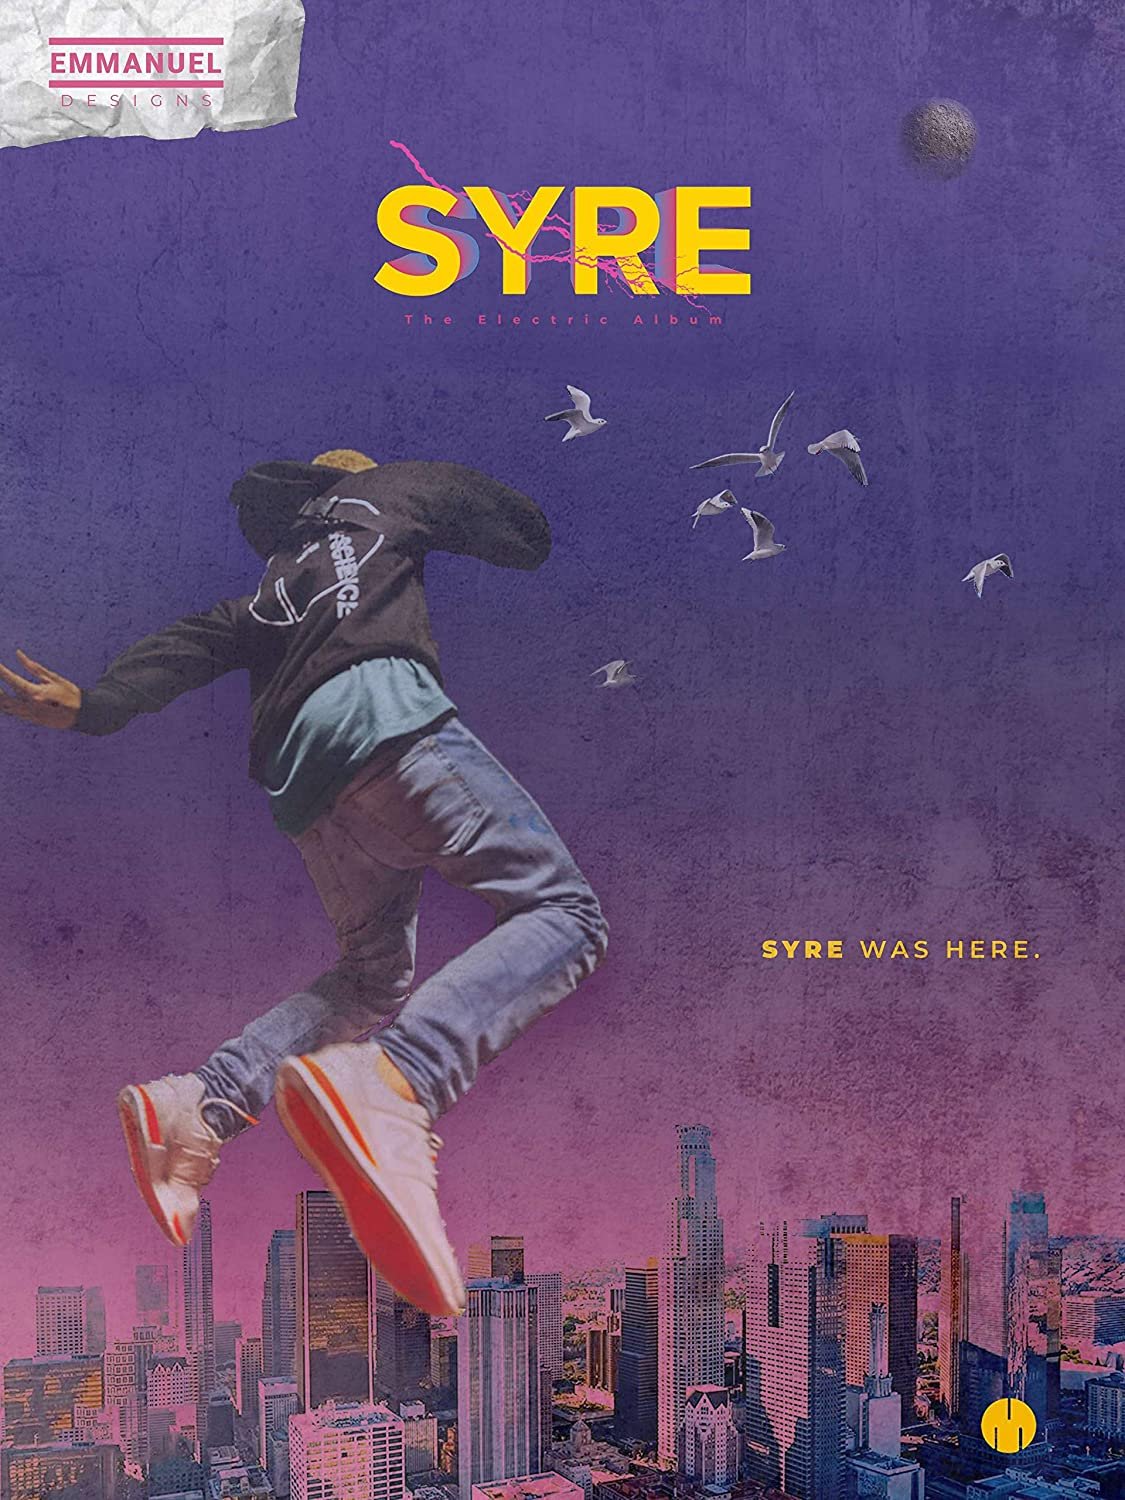 Syre the Electric Album Jaden Smith Poster Wall Decor Gift